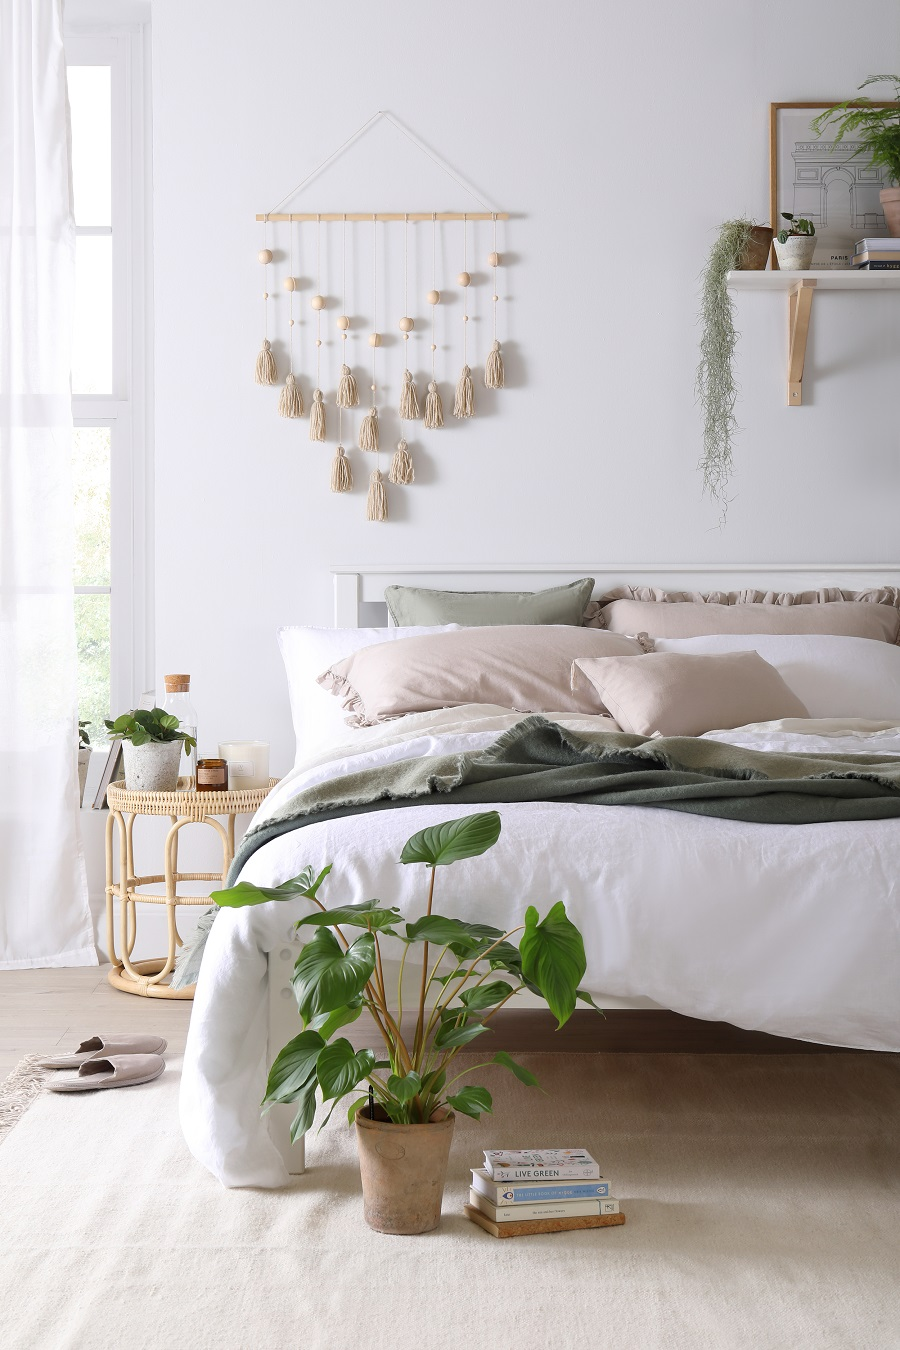 A Chic Scandinavian Style Bedroom and How to Get The Look